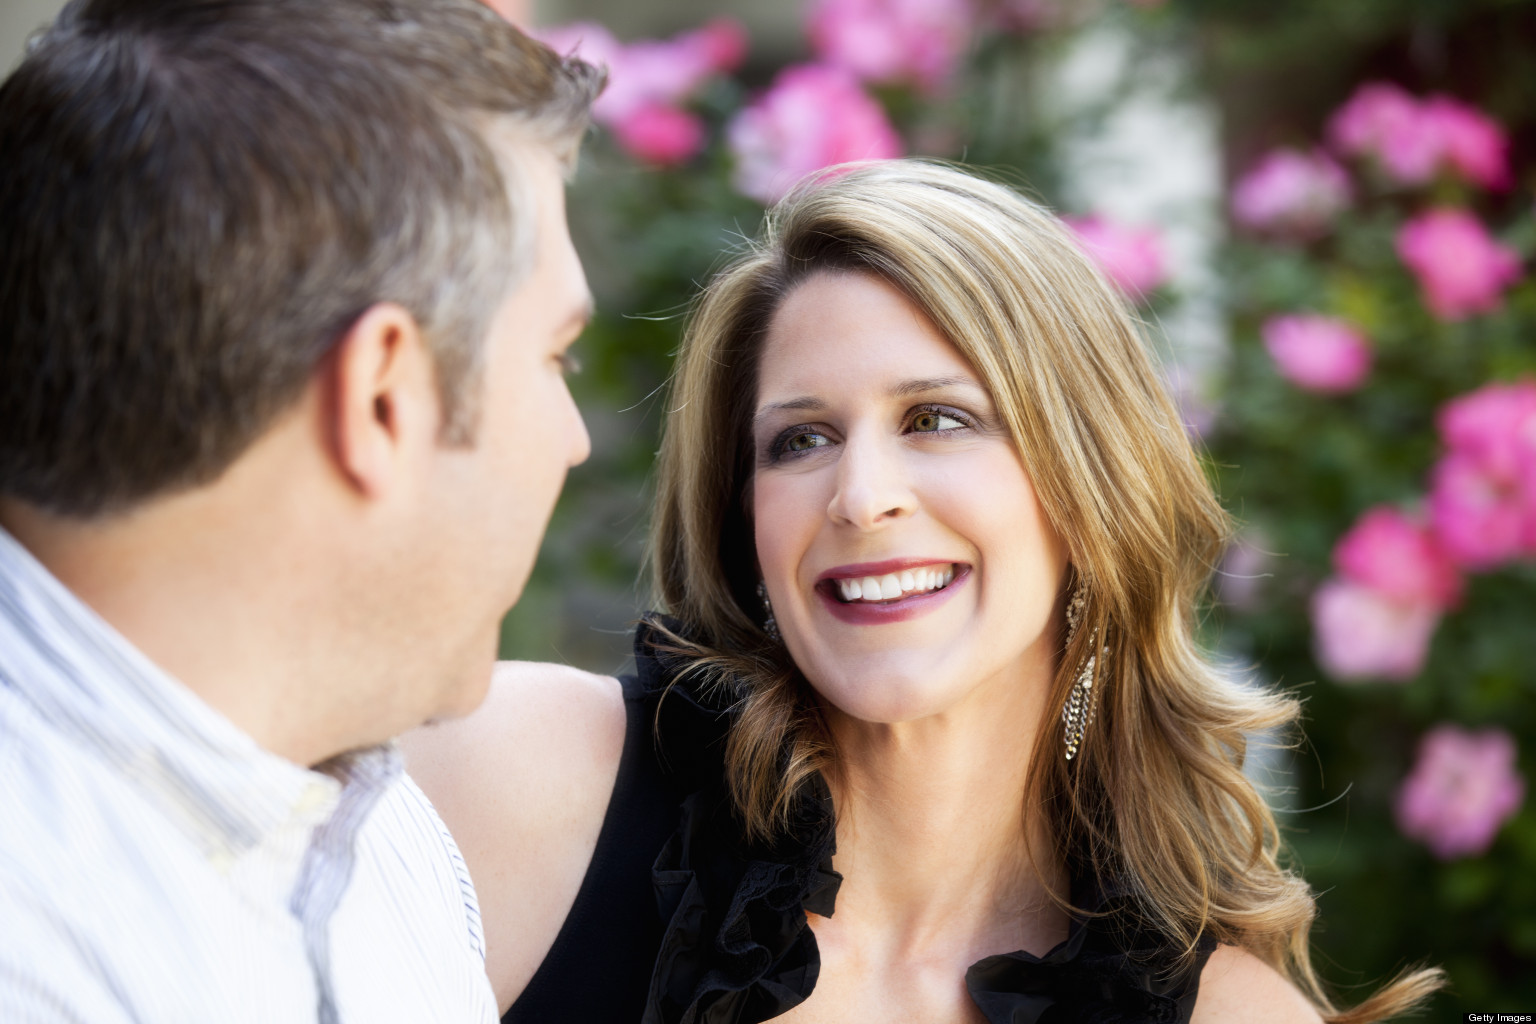 How To Handle Relationships After Divorce